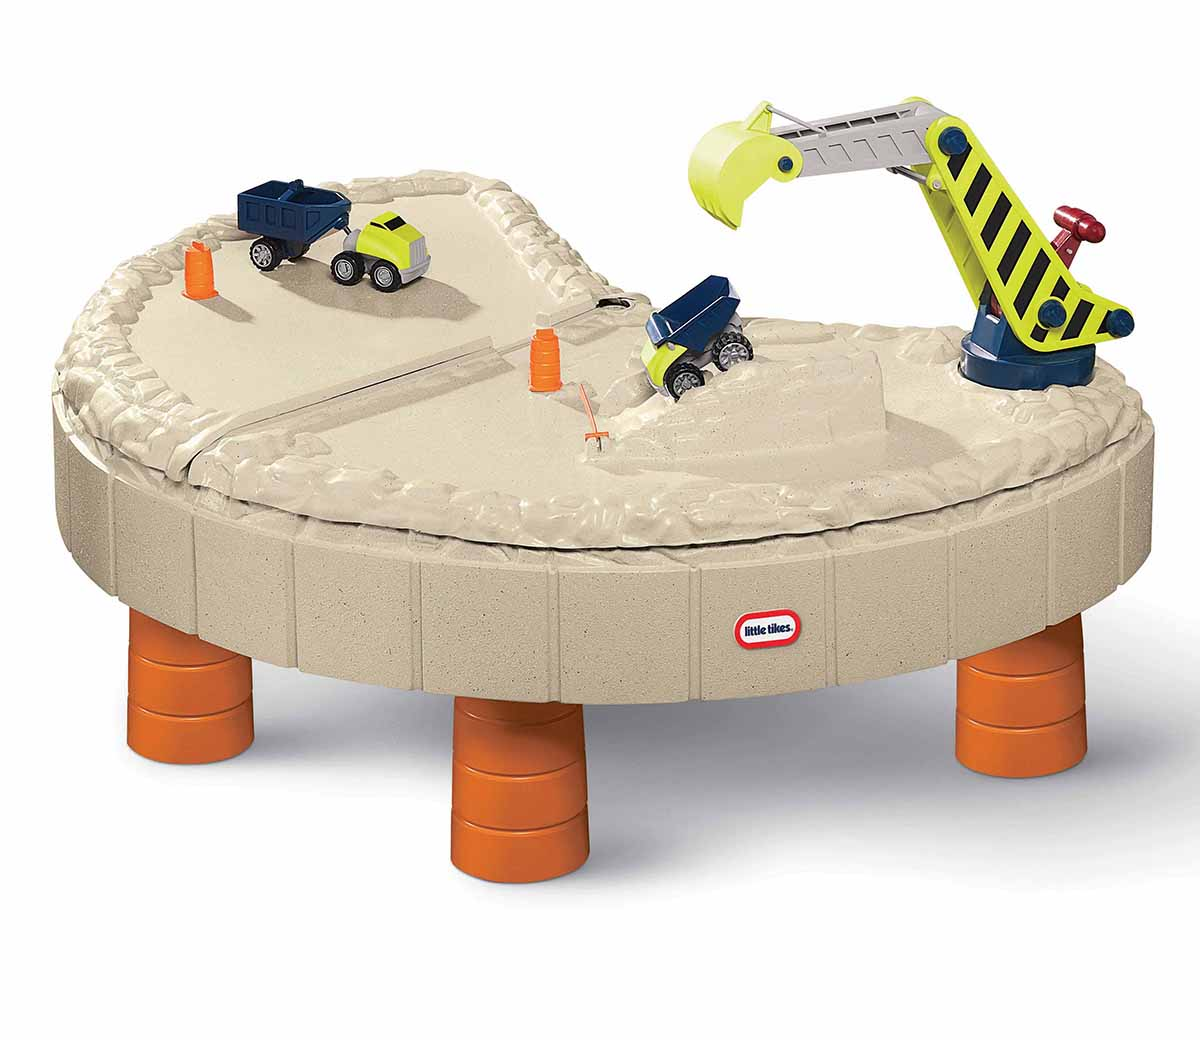 Builders Bay Sand And Water Table Little Tikes